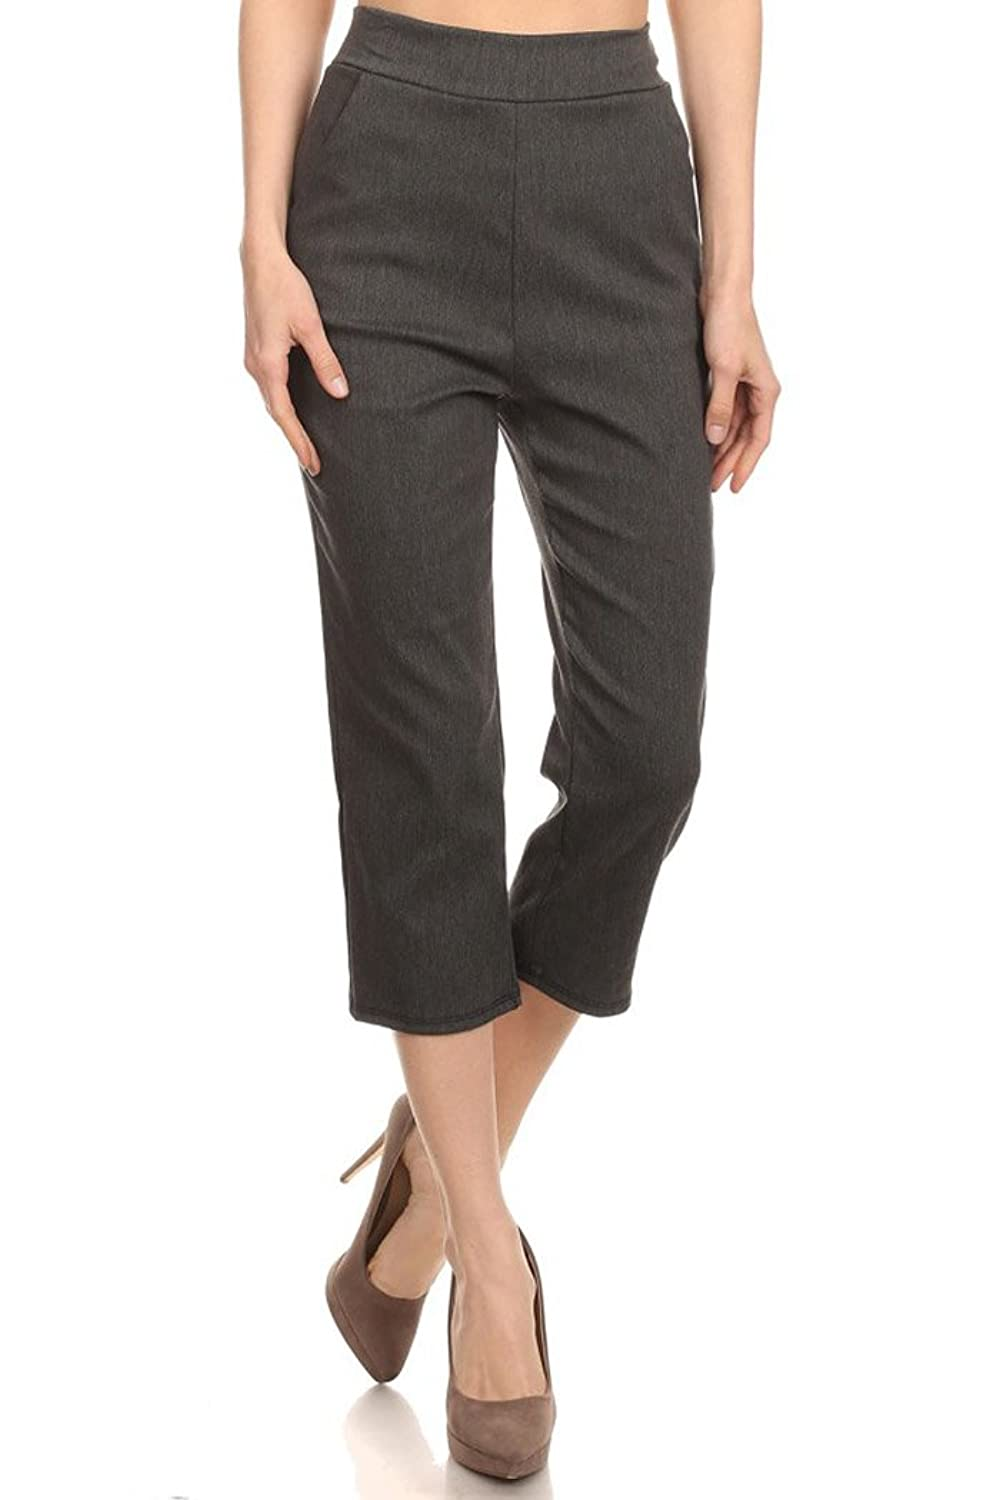 Women's Stretch Millennium Slim Style Crop Pants. MADE IN USA